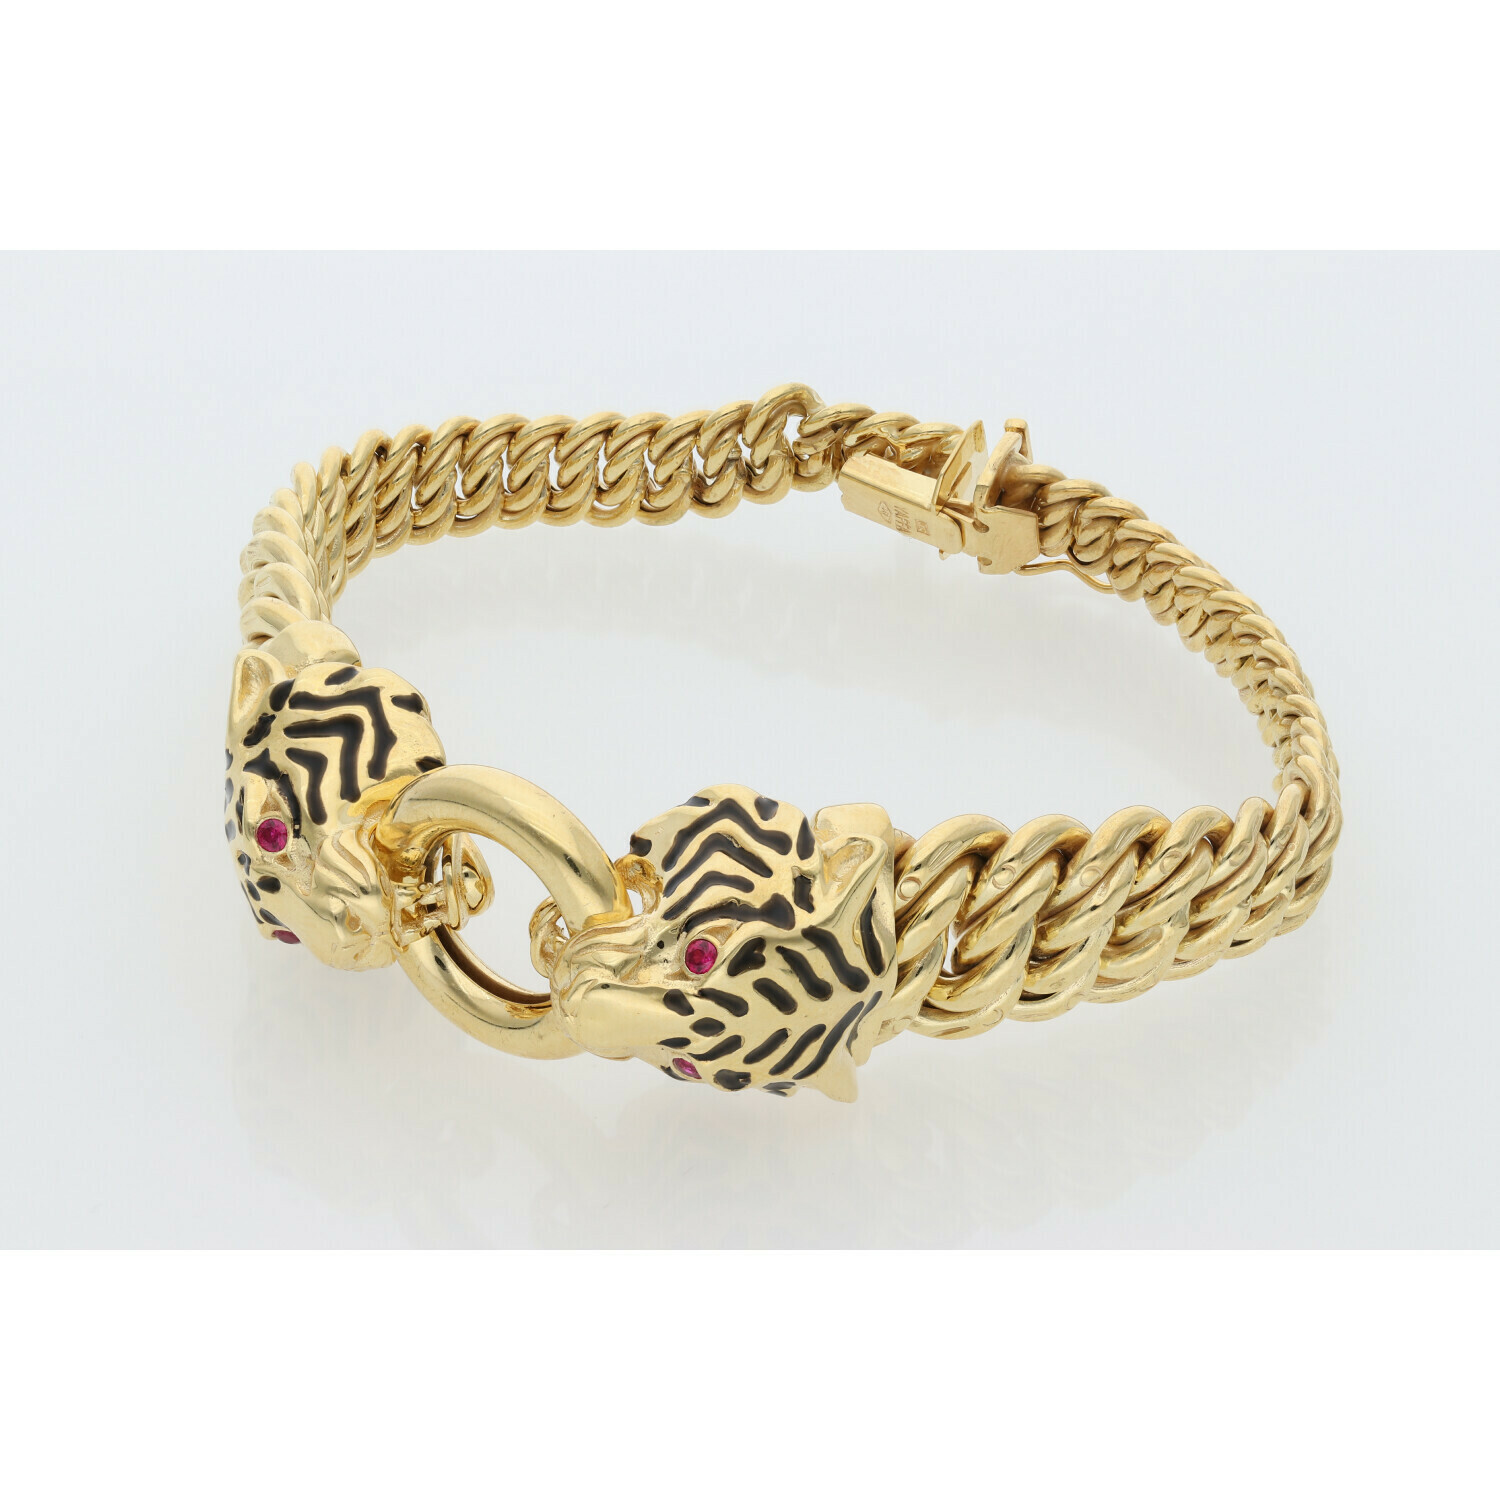 10 Karat Gold & Zirconium Two Tiger Princess Style Bracelet